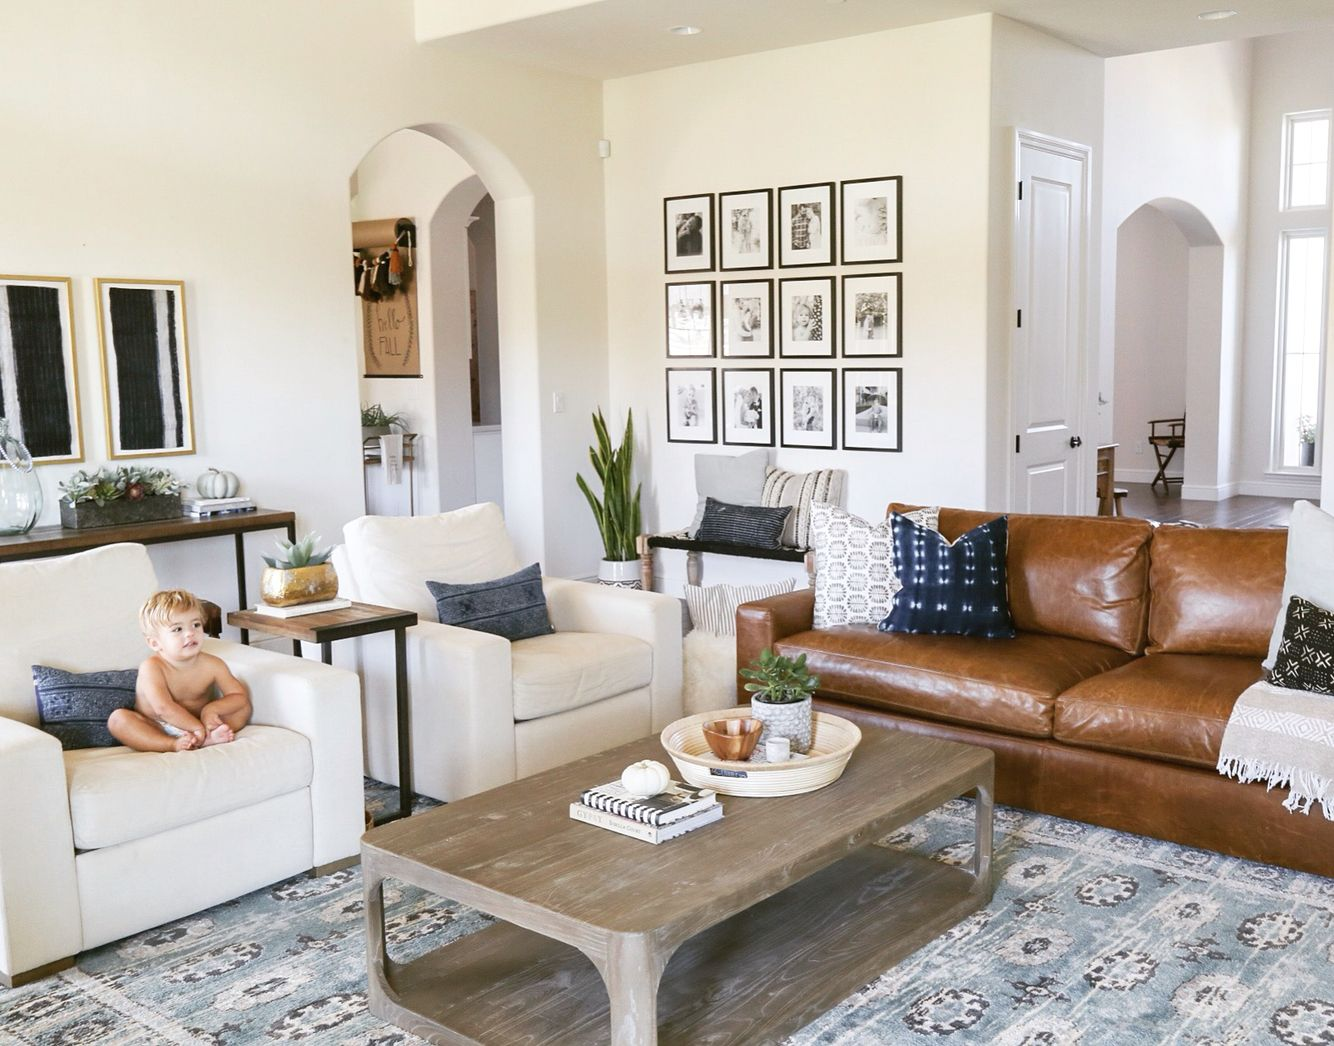 Living Room Decorating Ideas Leather Couches Beautiful Rooms Pinterest These Are Total Decor Goals My Future Home Interior Design Traditional Modern Boho Camel Couch Restoration Hardware Furniture Gallery Wall Kaila Walls